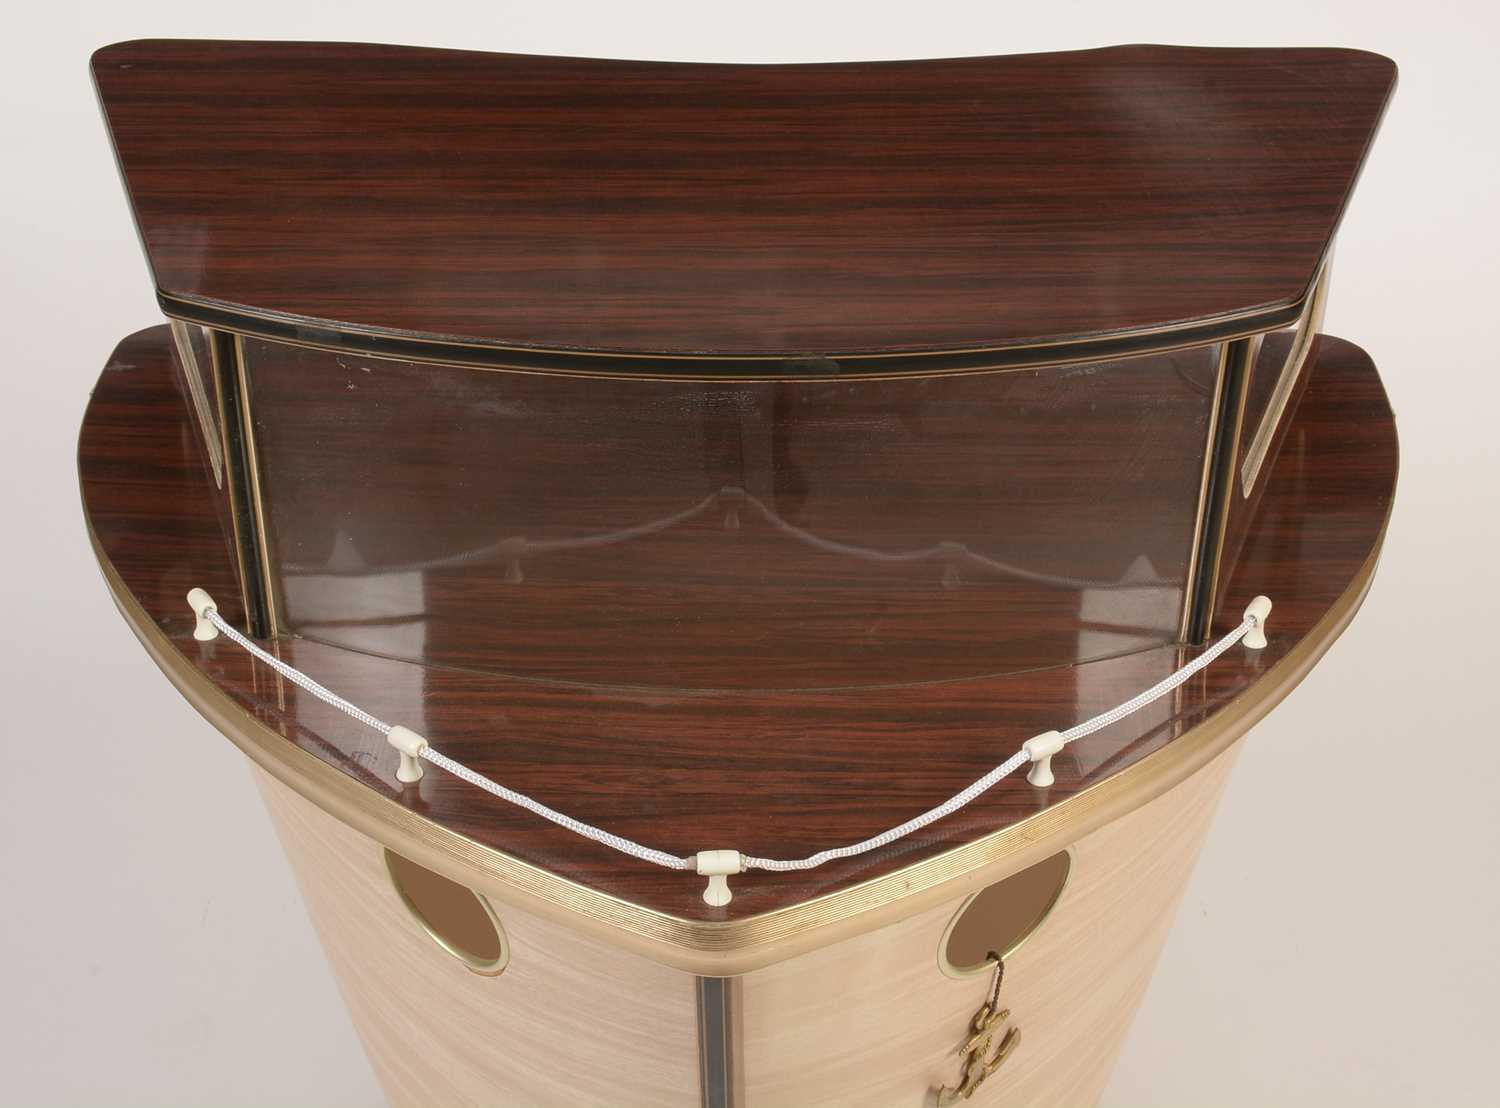 Umberto Mascagni, Bologne, Italy: a mid 20th Century boat form cocktail bar. - Image 4 of 5